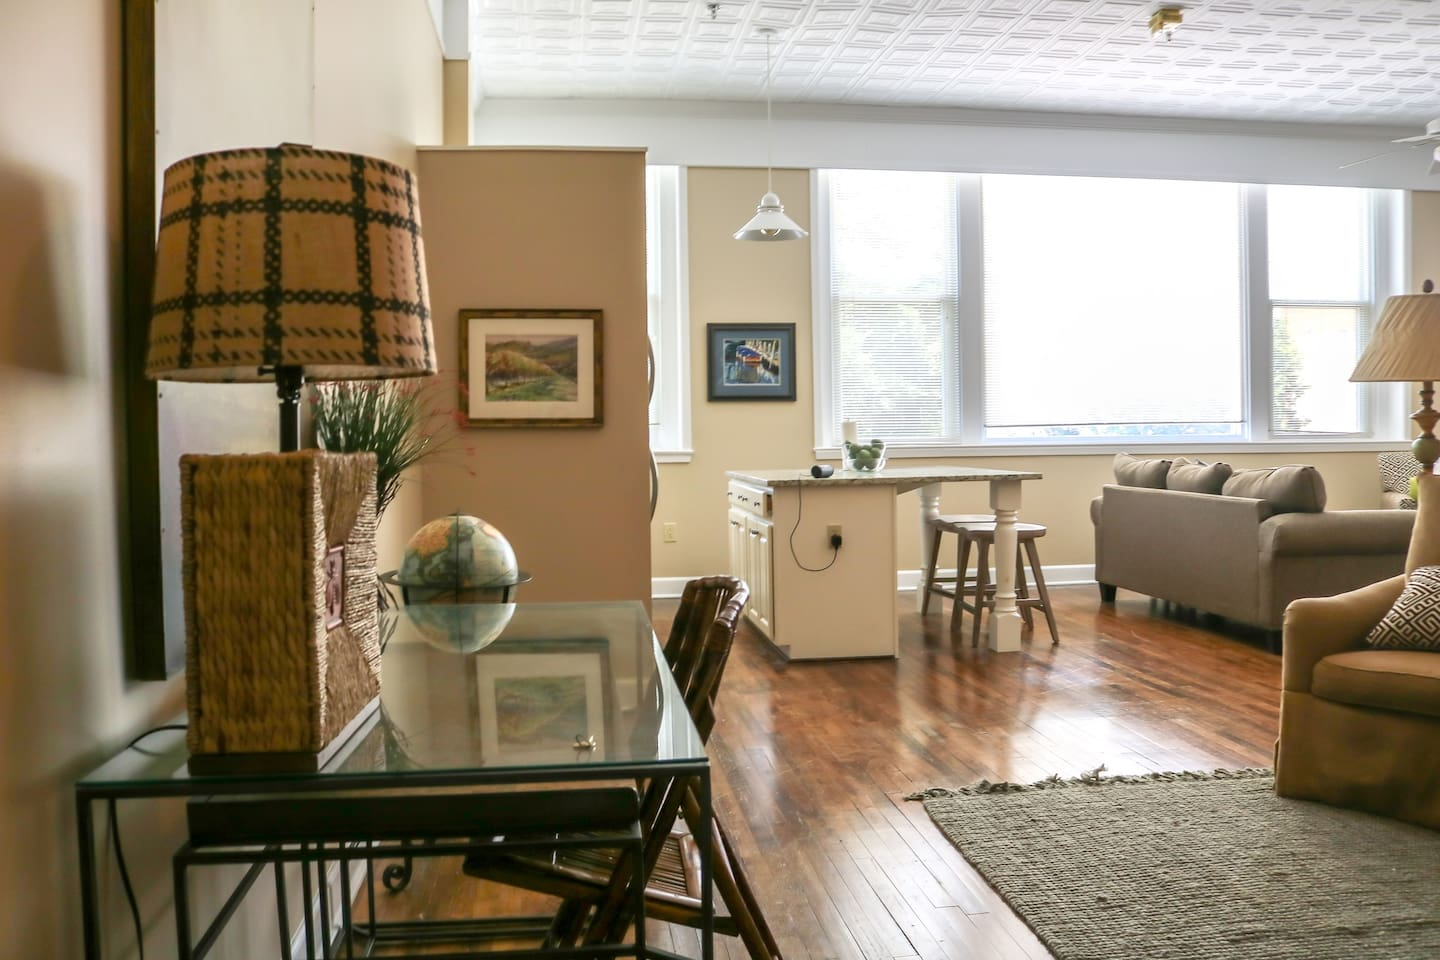 12 foot ceilings, open concept